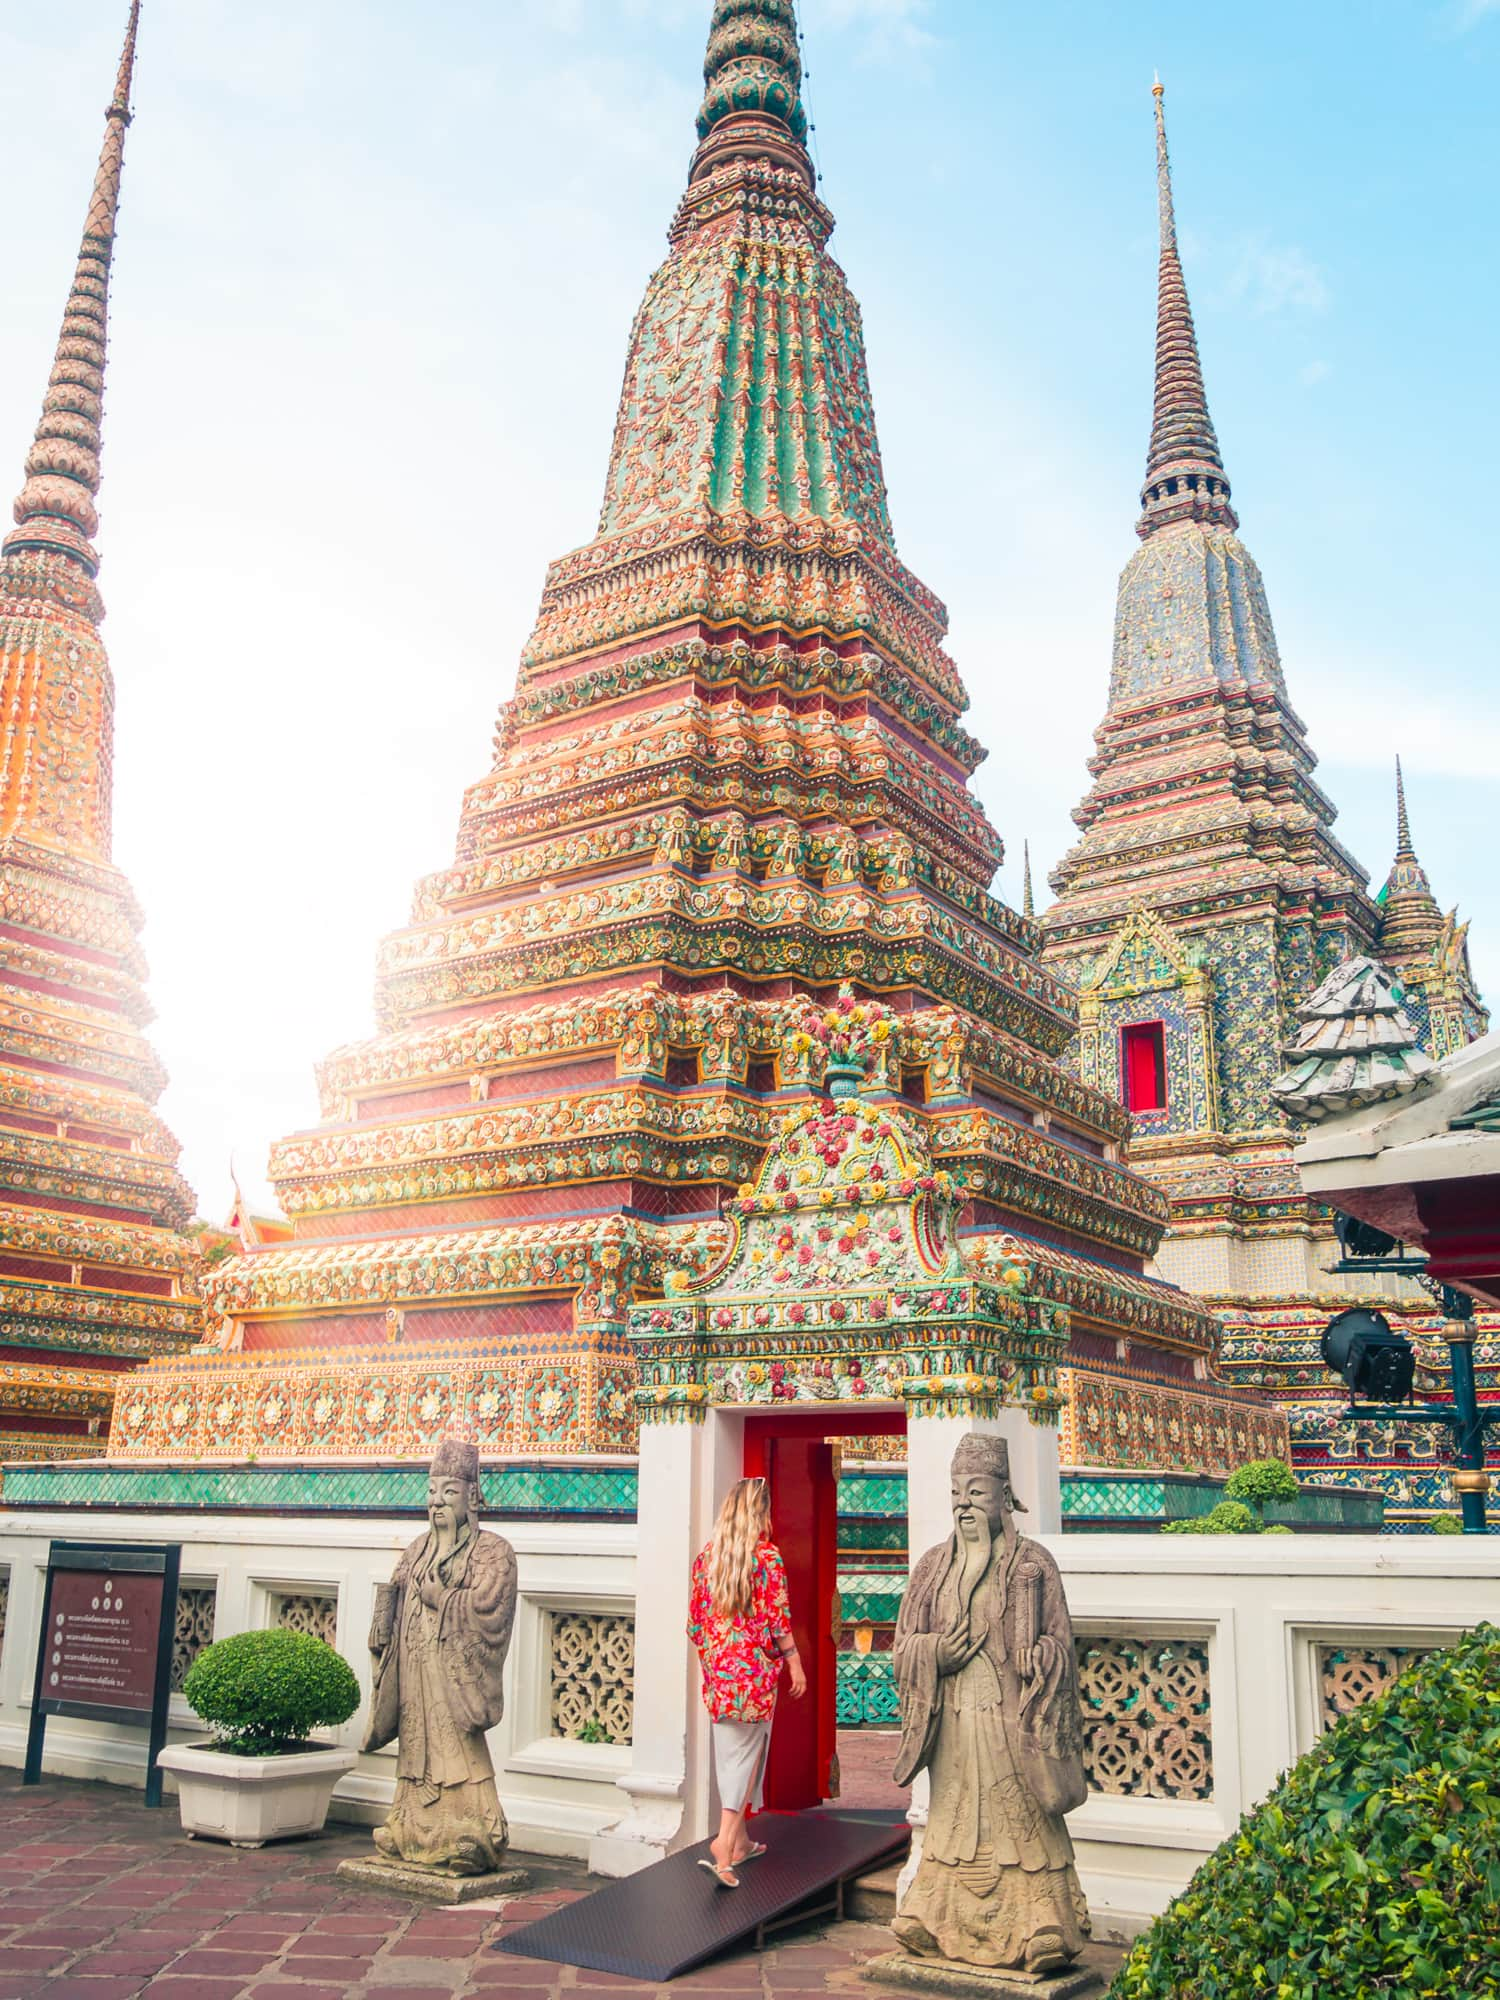 Top 20 sights & attractions in Bangkok - Wat Pho